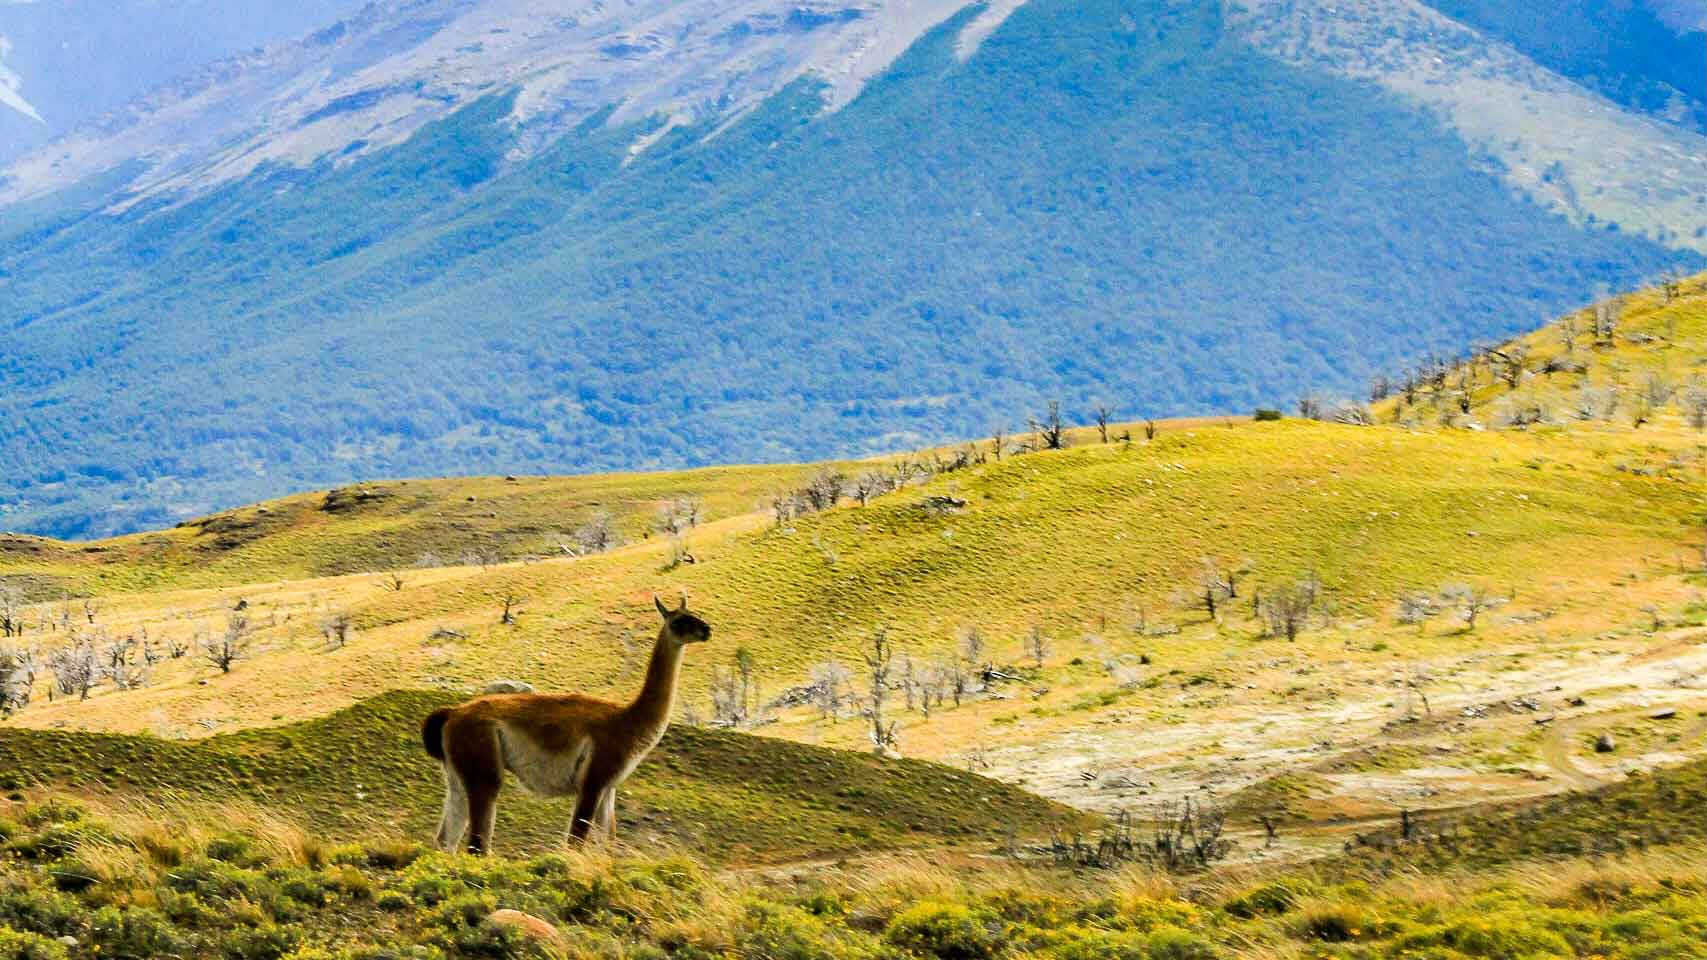 Llama standing on grass covered hills in front of the Torres del Paine with a cloud covered sky. Patagonia, Chile